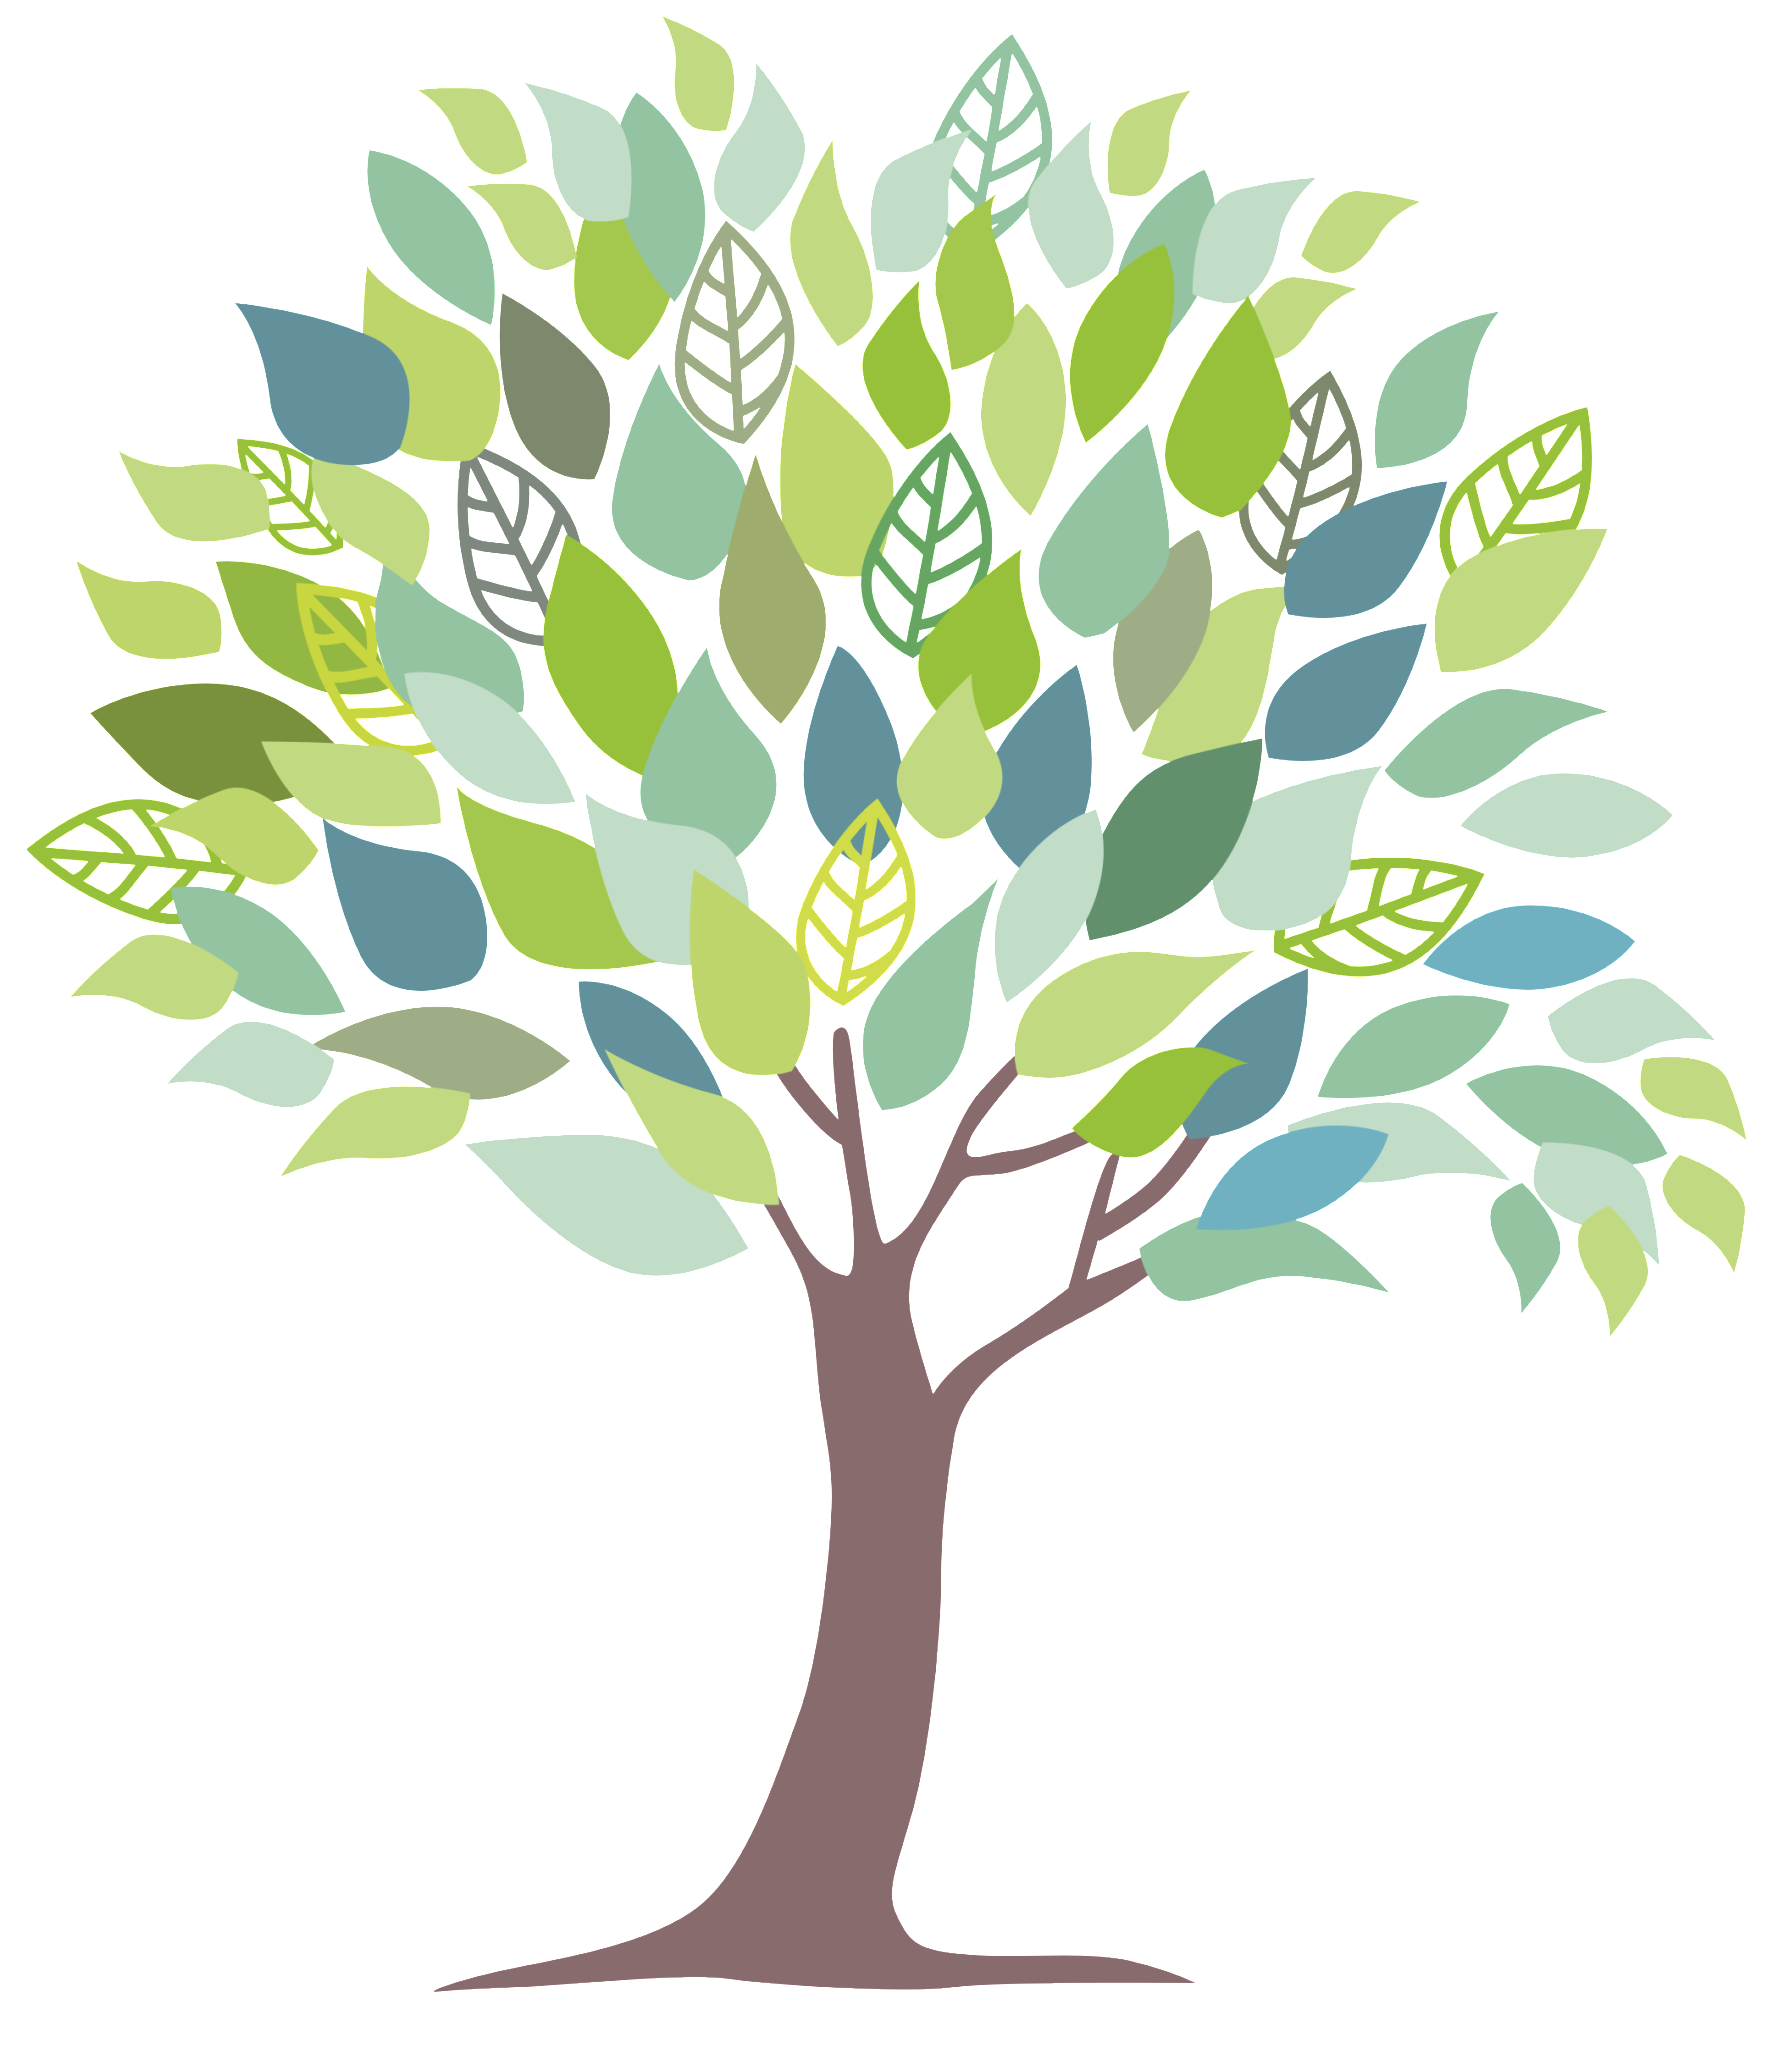 Learning tree clipart download Staff – Psychological Services Center at Temple University download